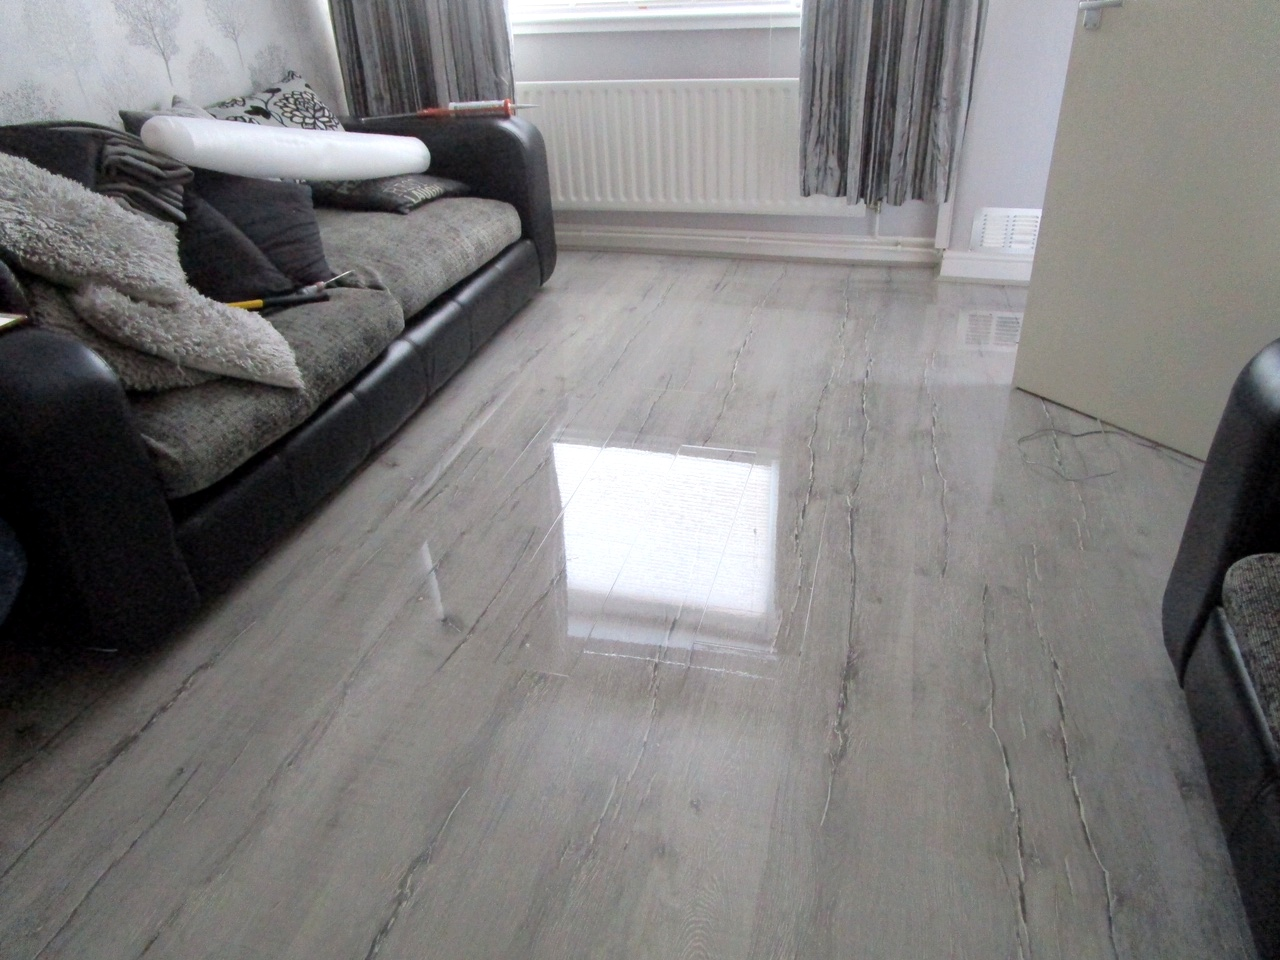 Natural light from window reflected on high-gloss of flooring